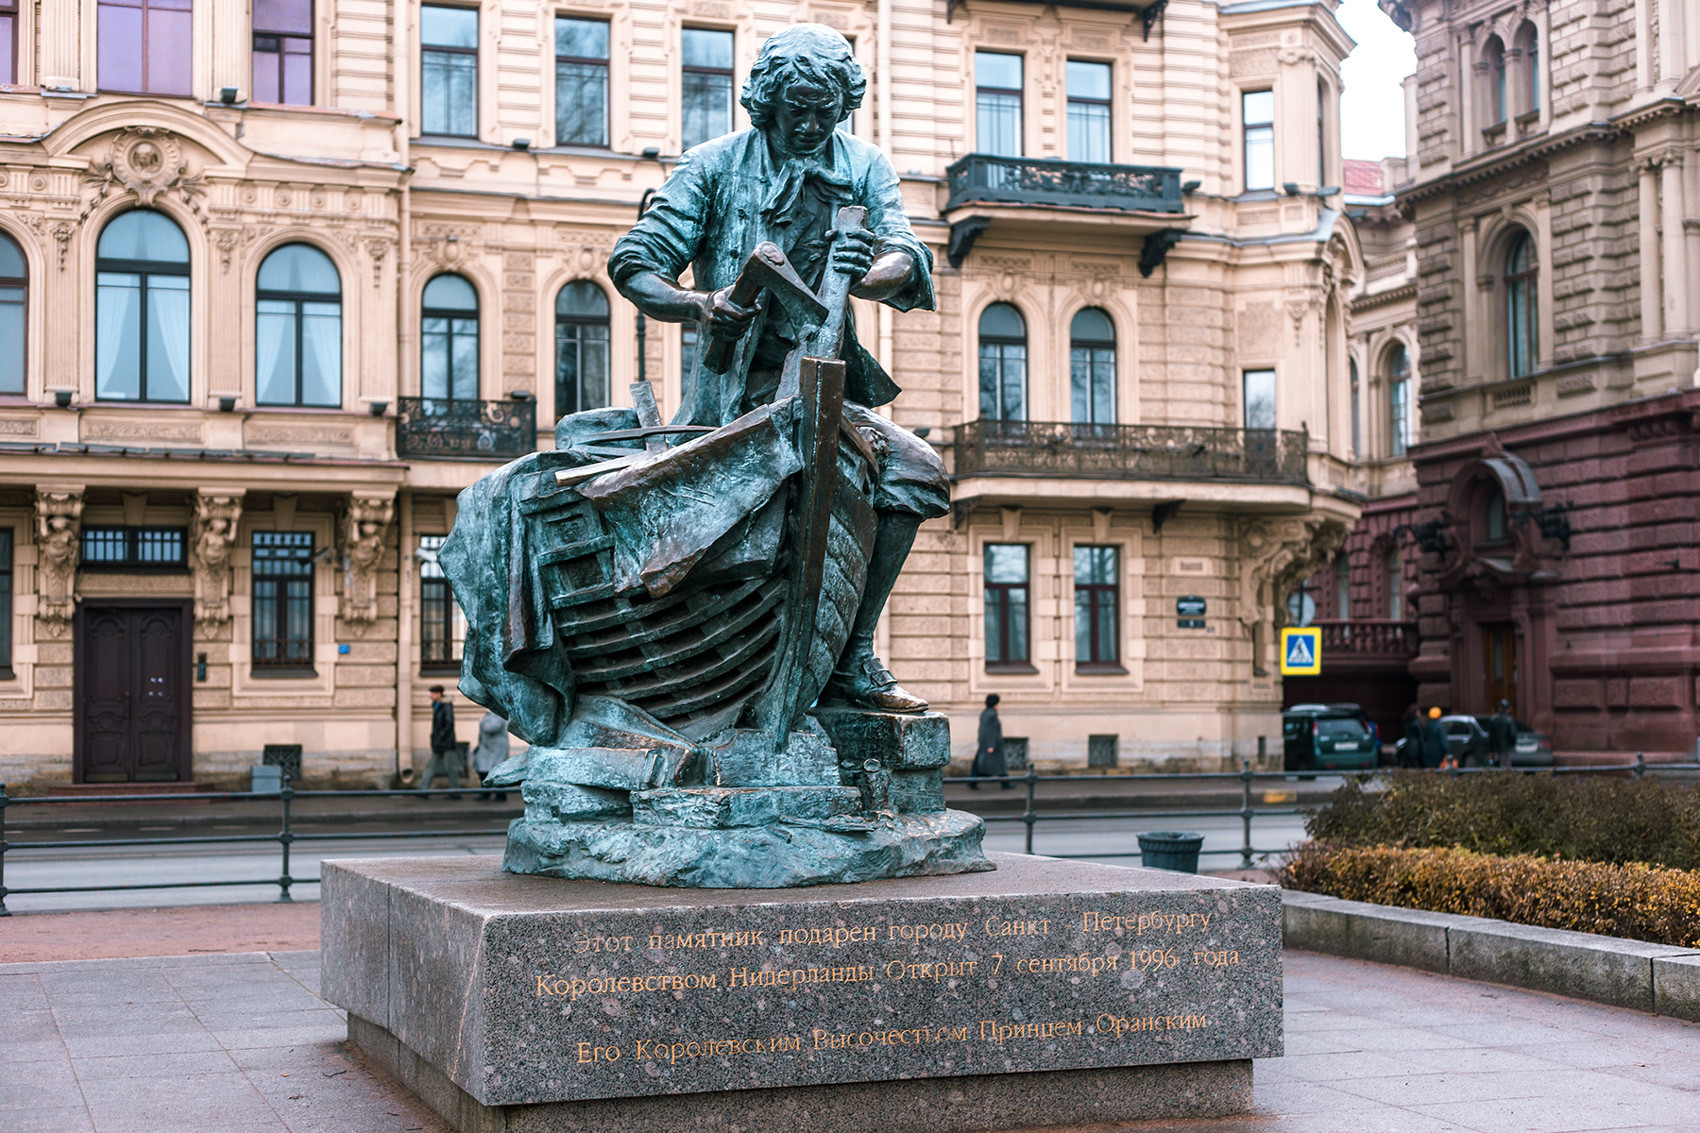 The monument to Peter the Great the shipbuilder, St. Petersburg